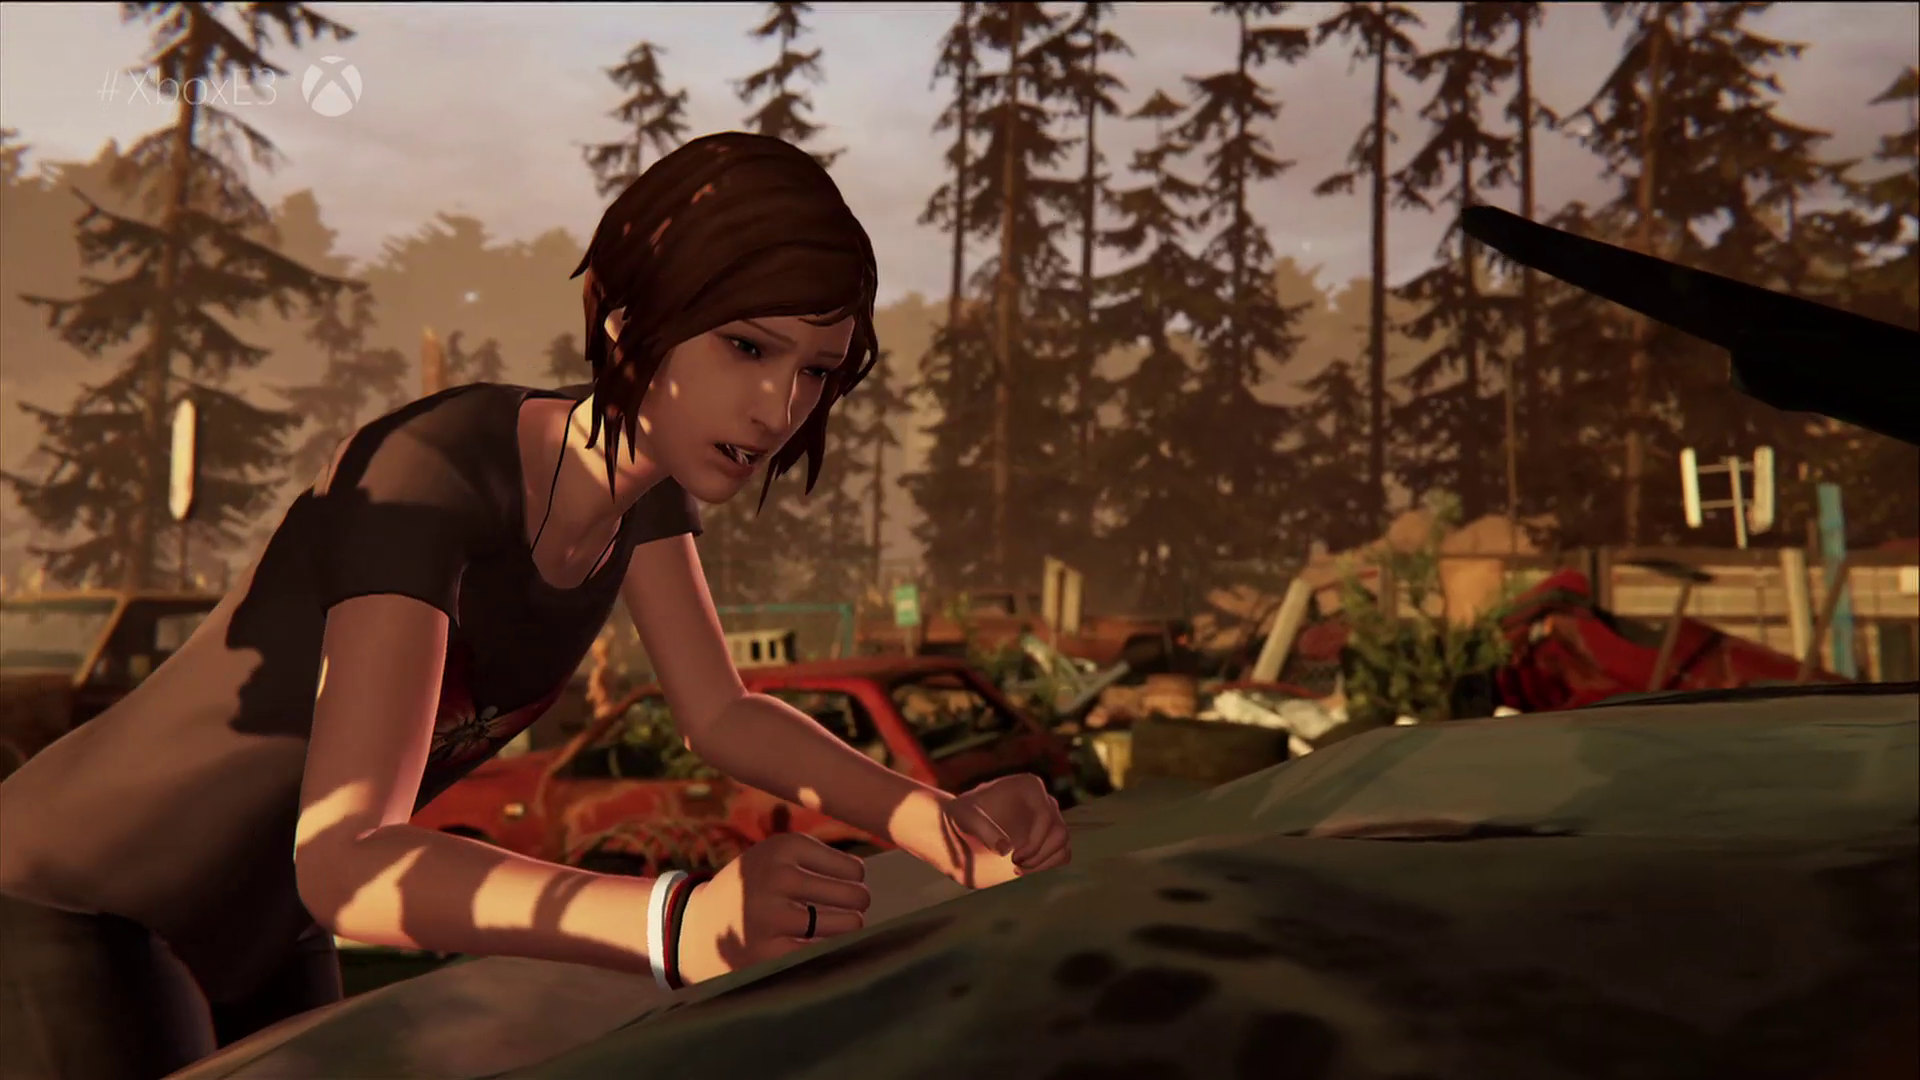 Life Is Strange: Before the Storm trailer features Chloe and Rachel